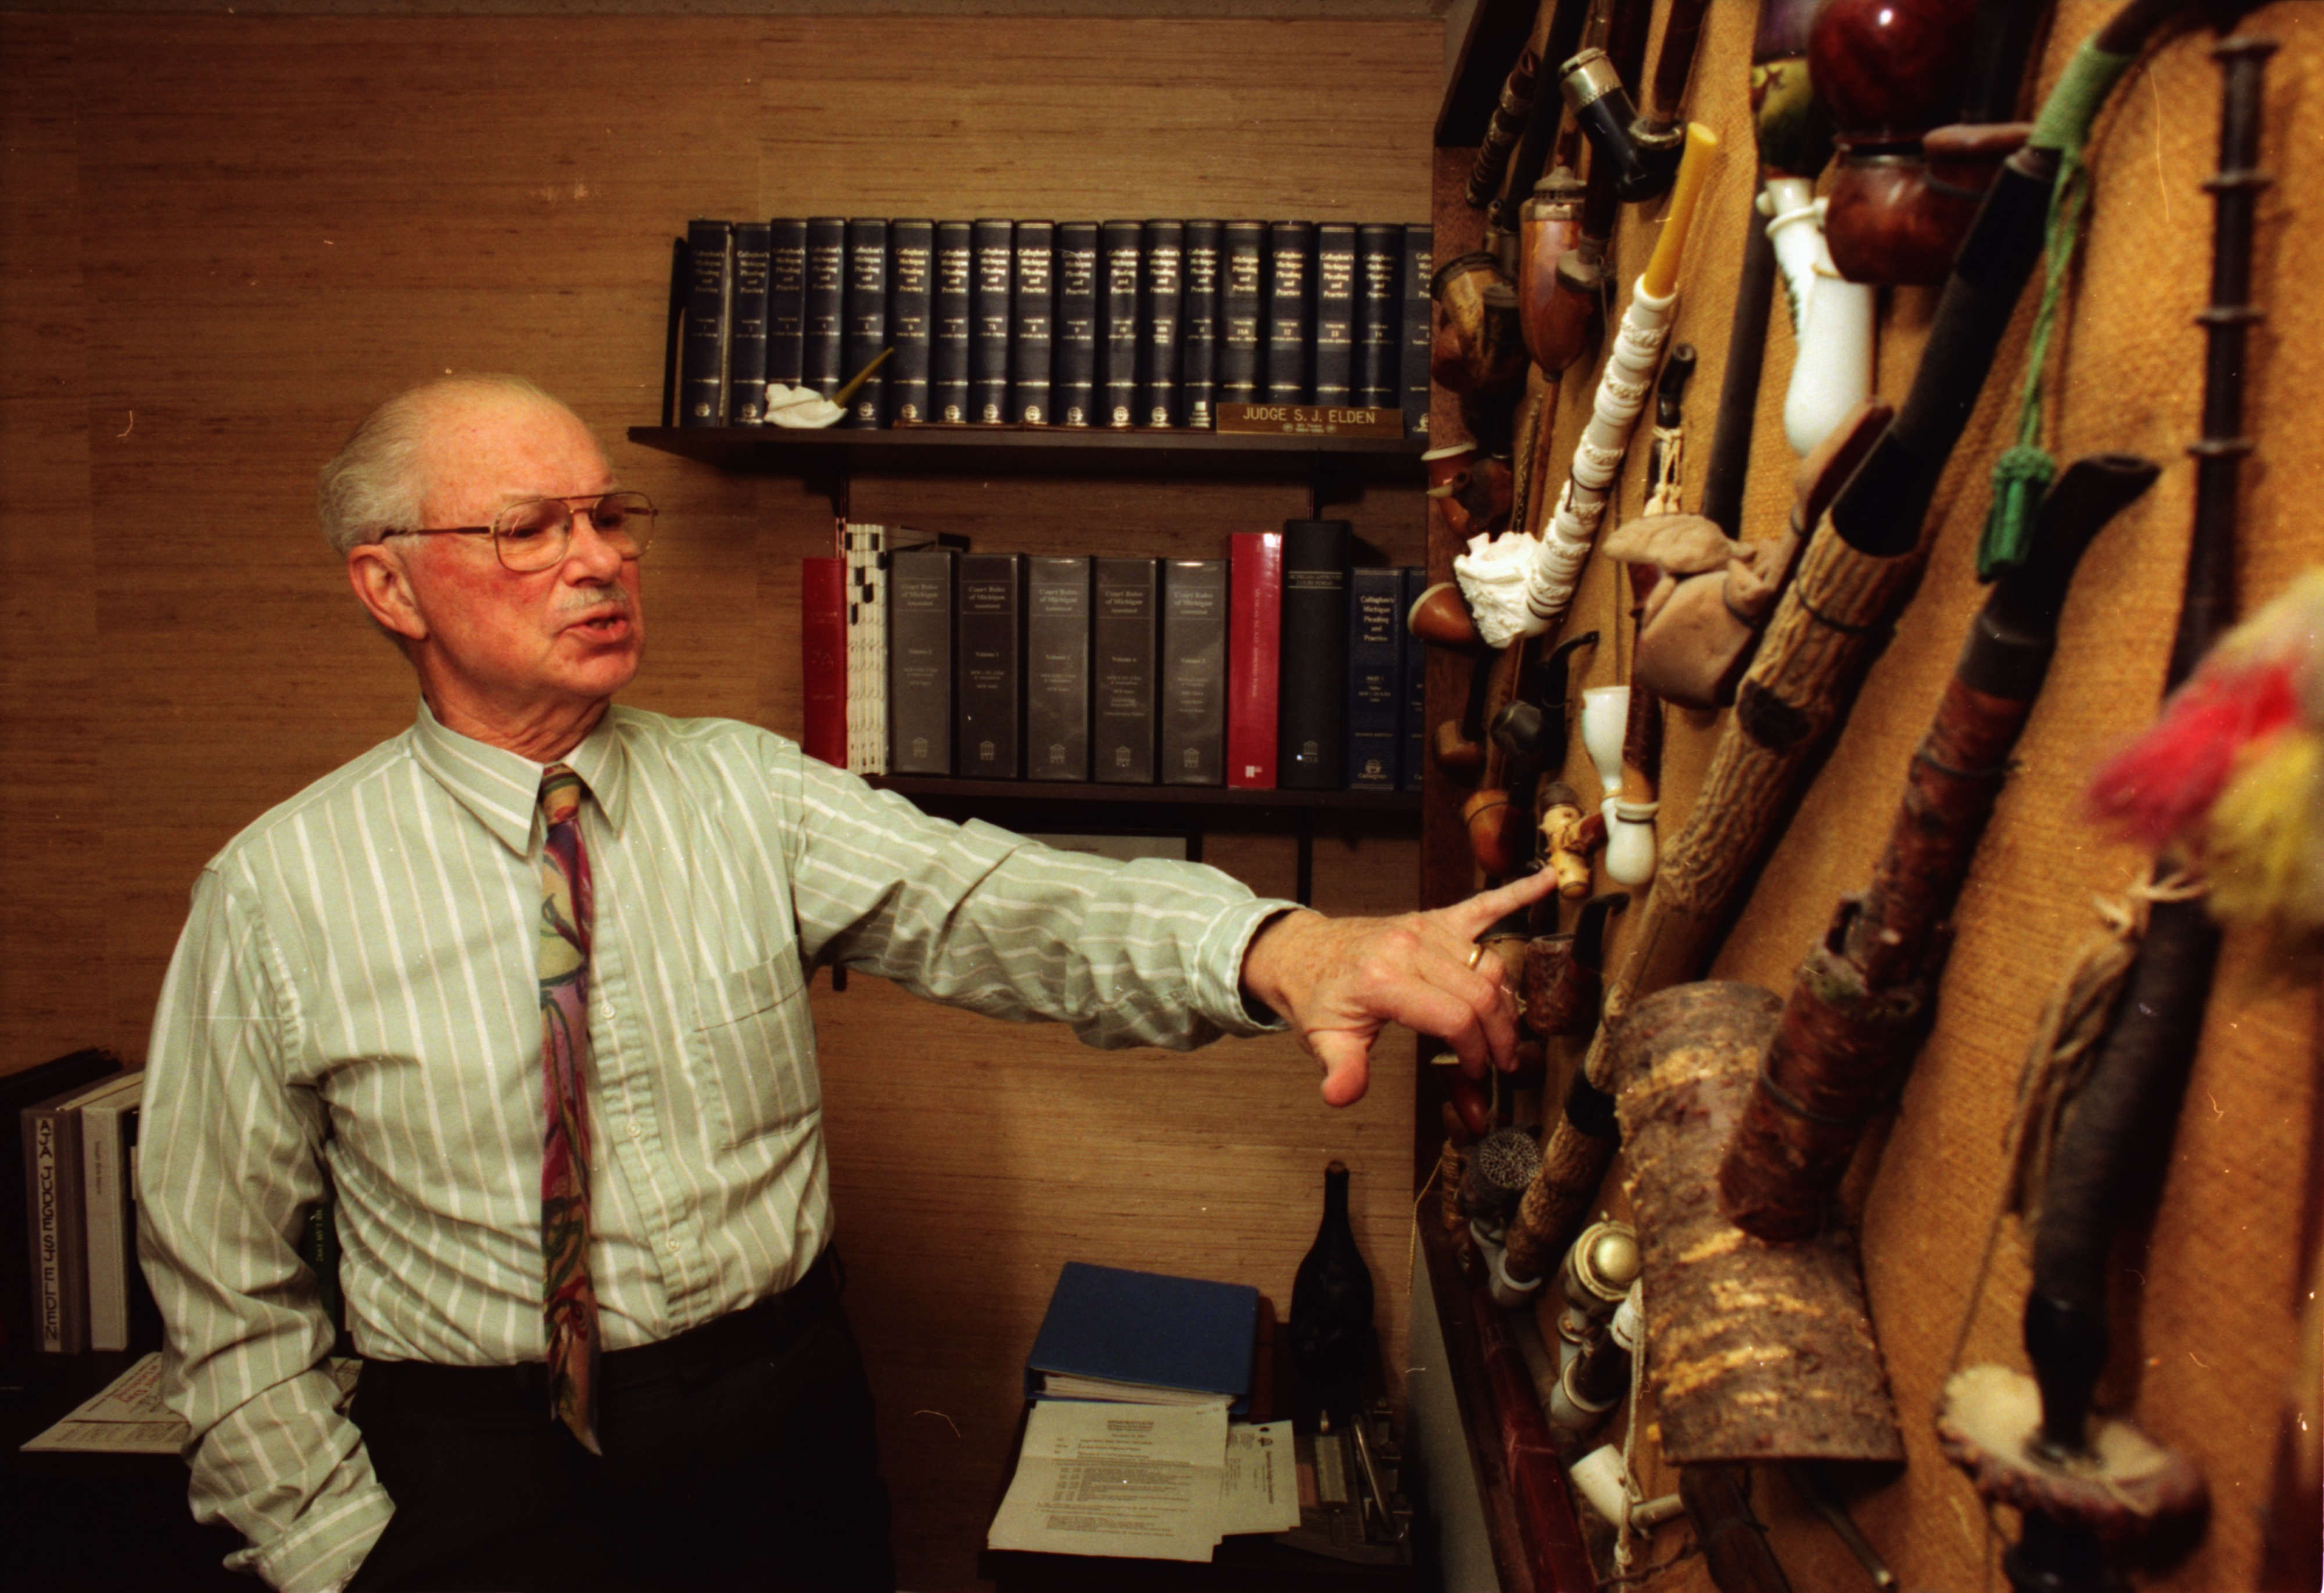 Judge S. J. Elden with Pipe Collection, December 1992 image